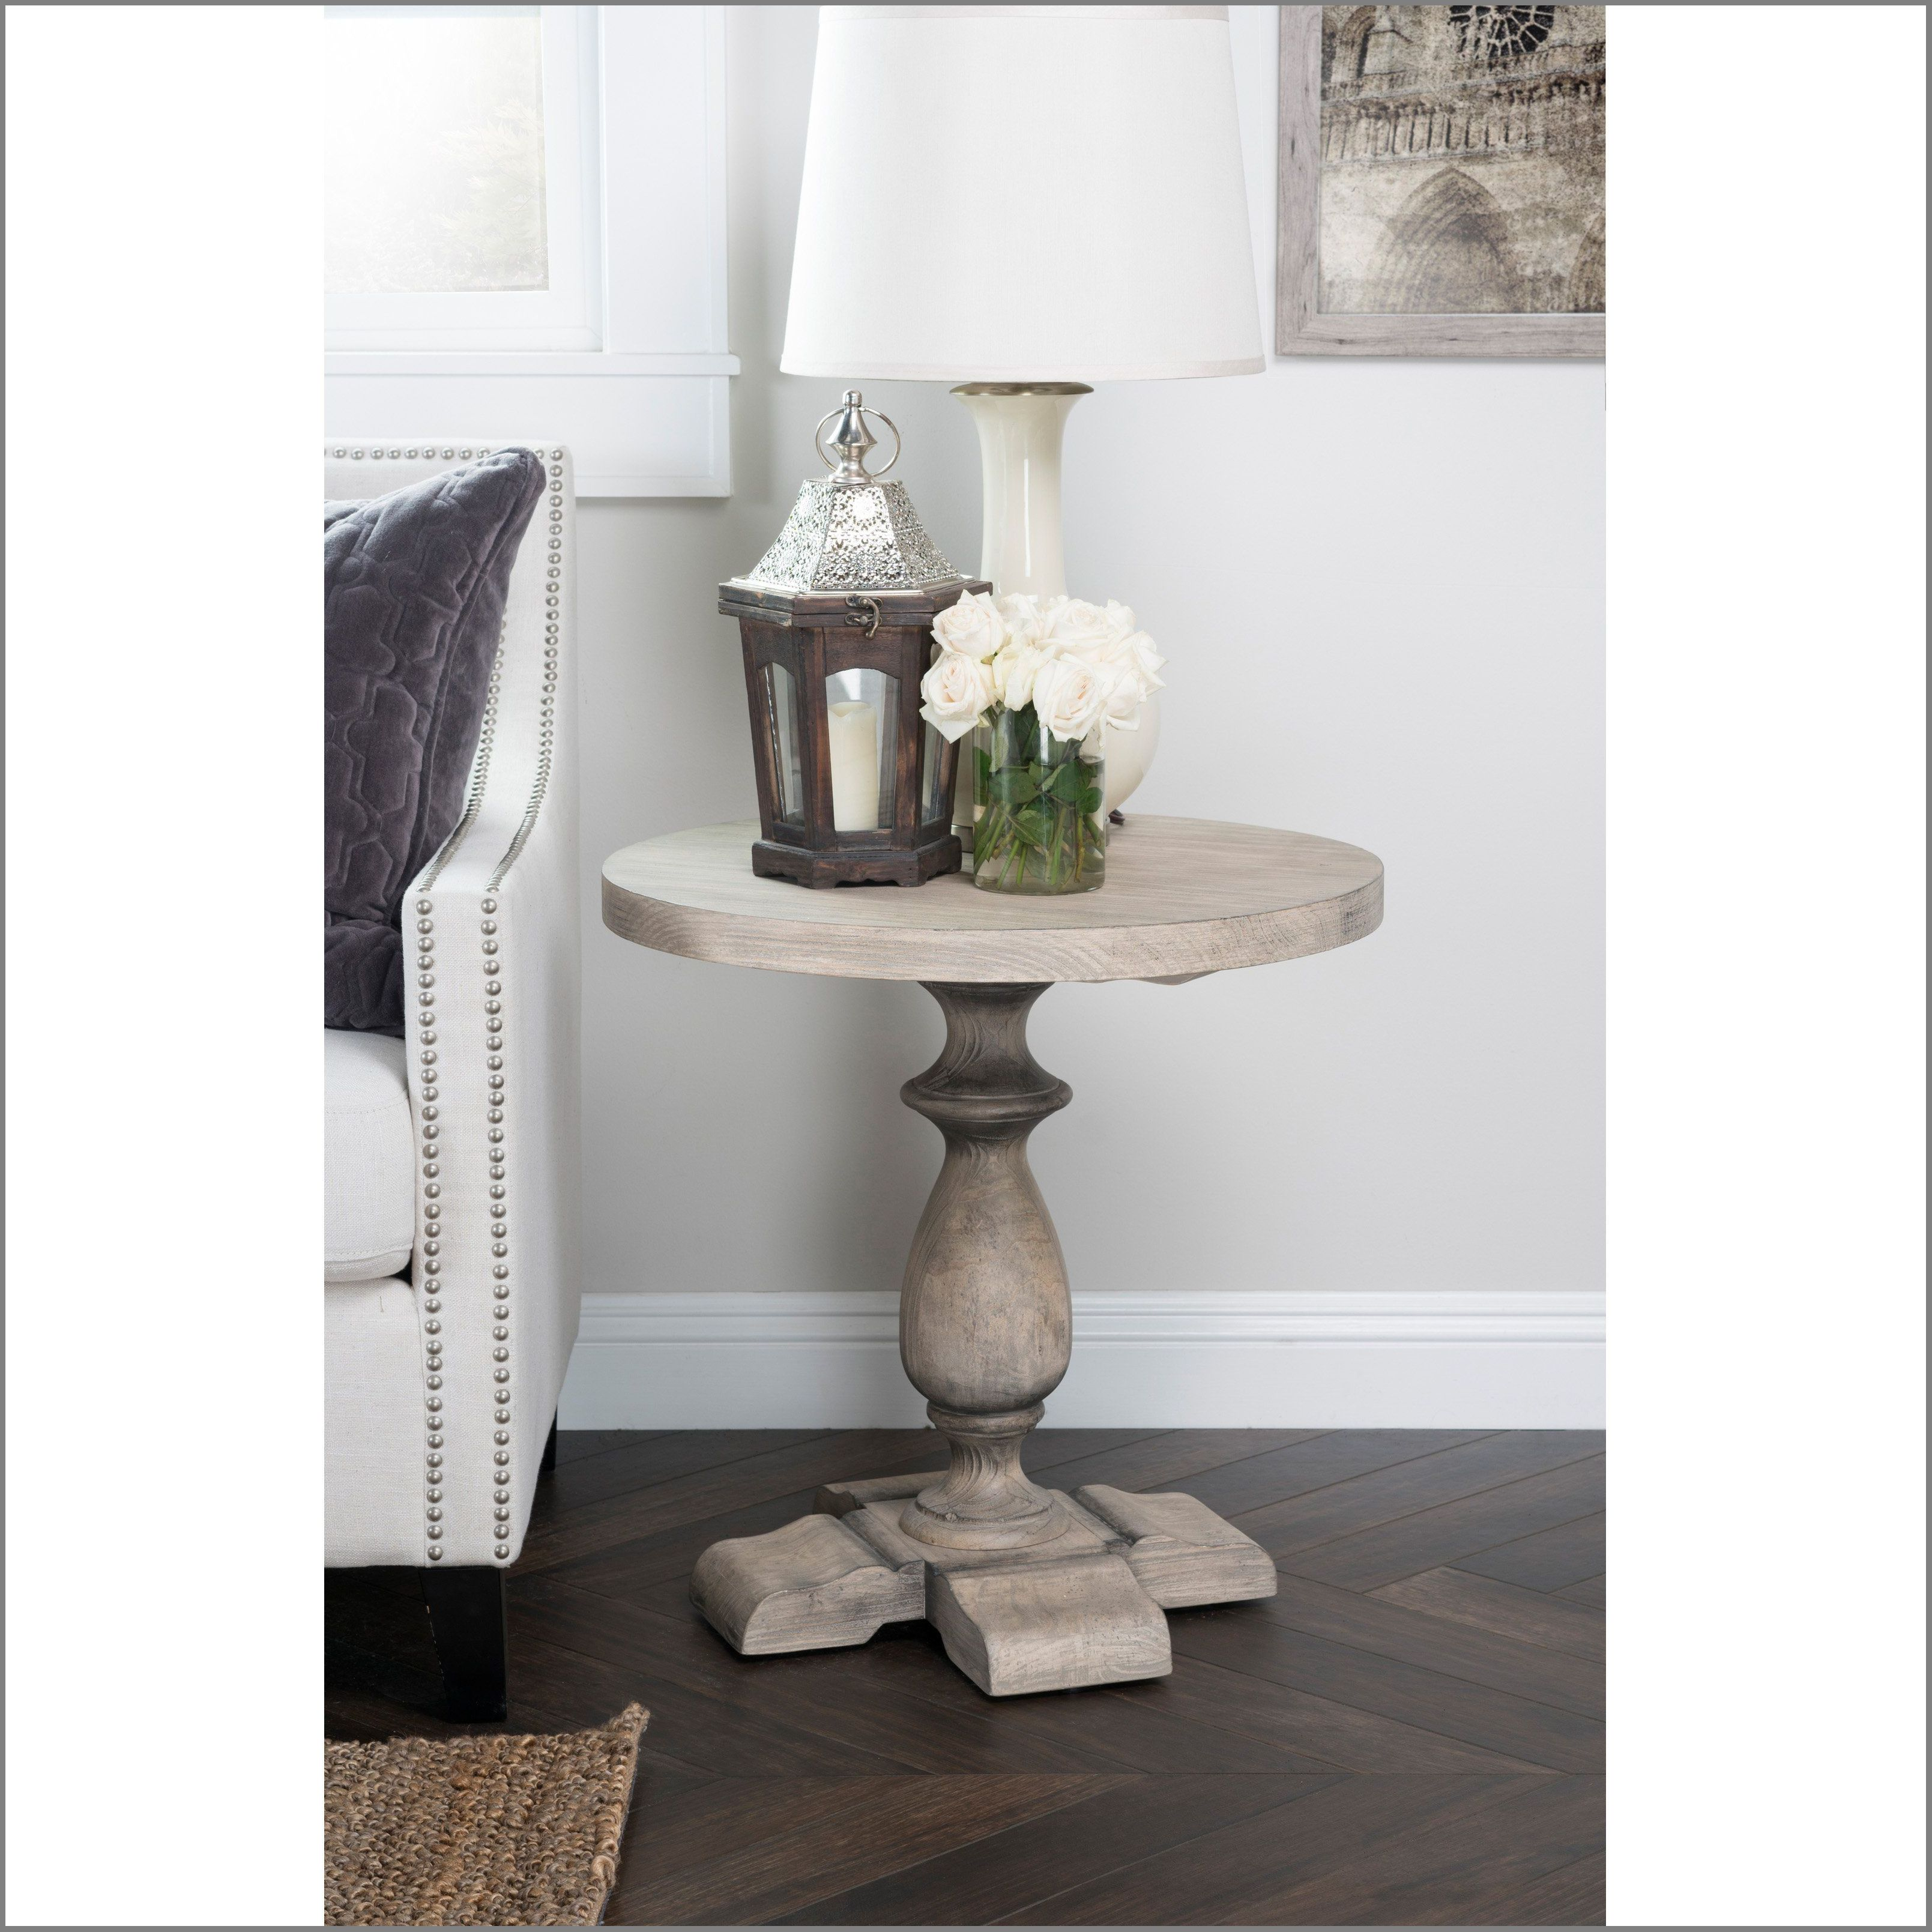 best home rustic westminster warm grey round end table from side decor ideas decorating glass silver coffee small white pedestal ashley furniture bench hours under wood metal set